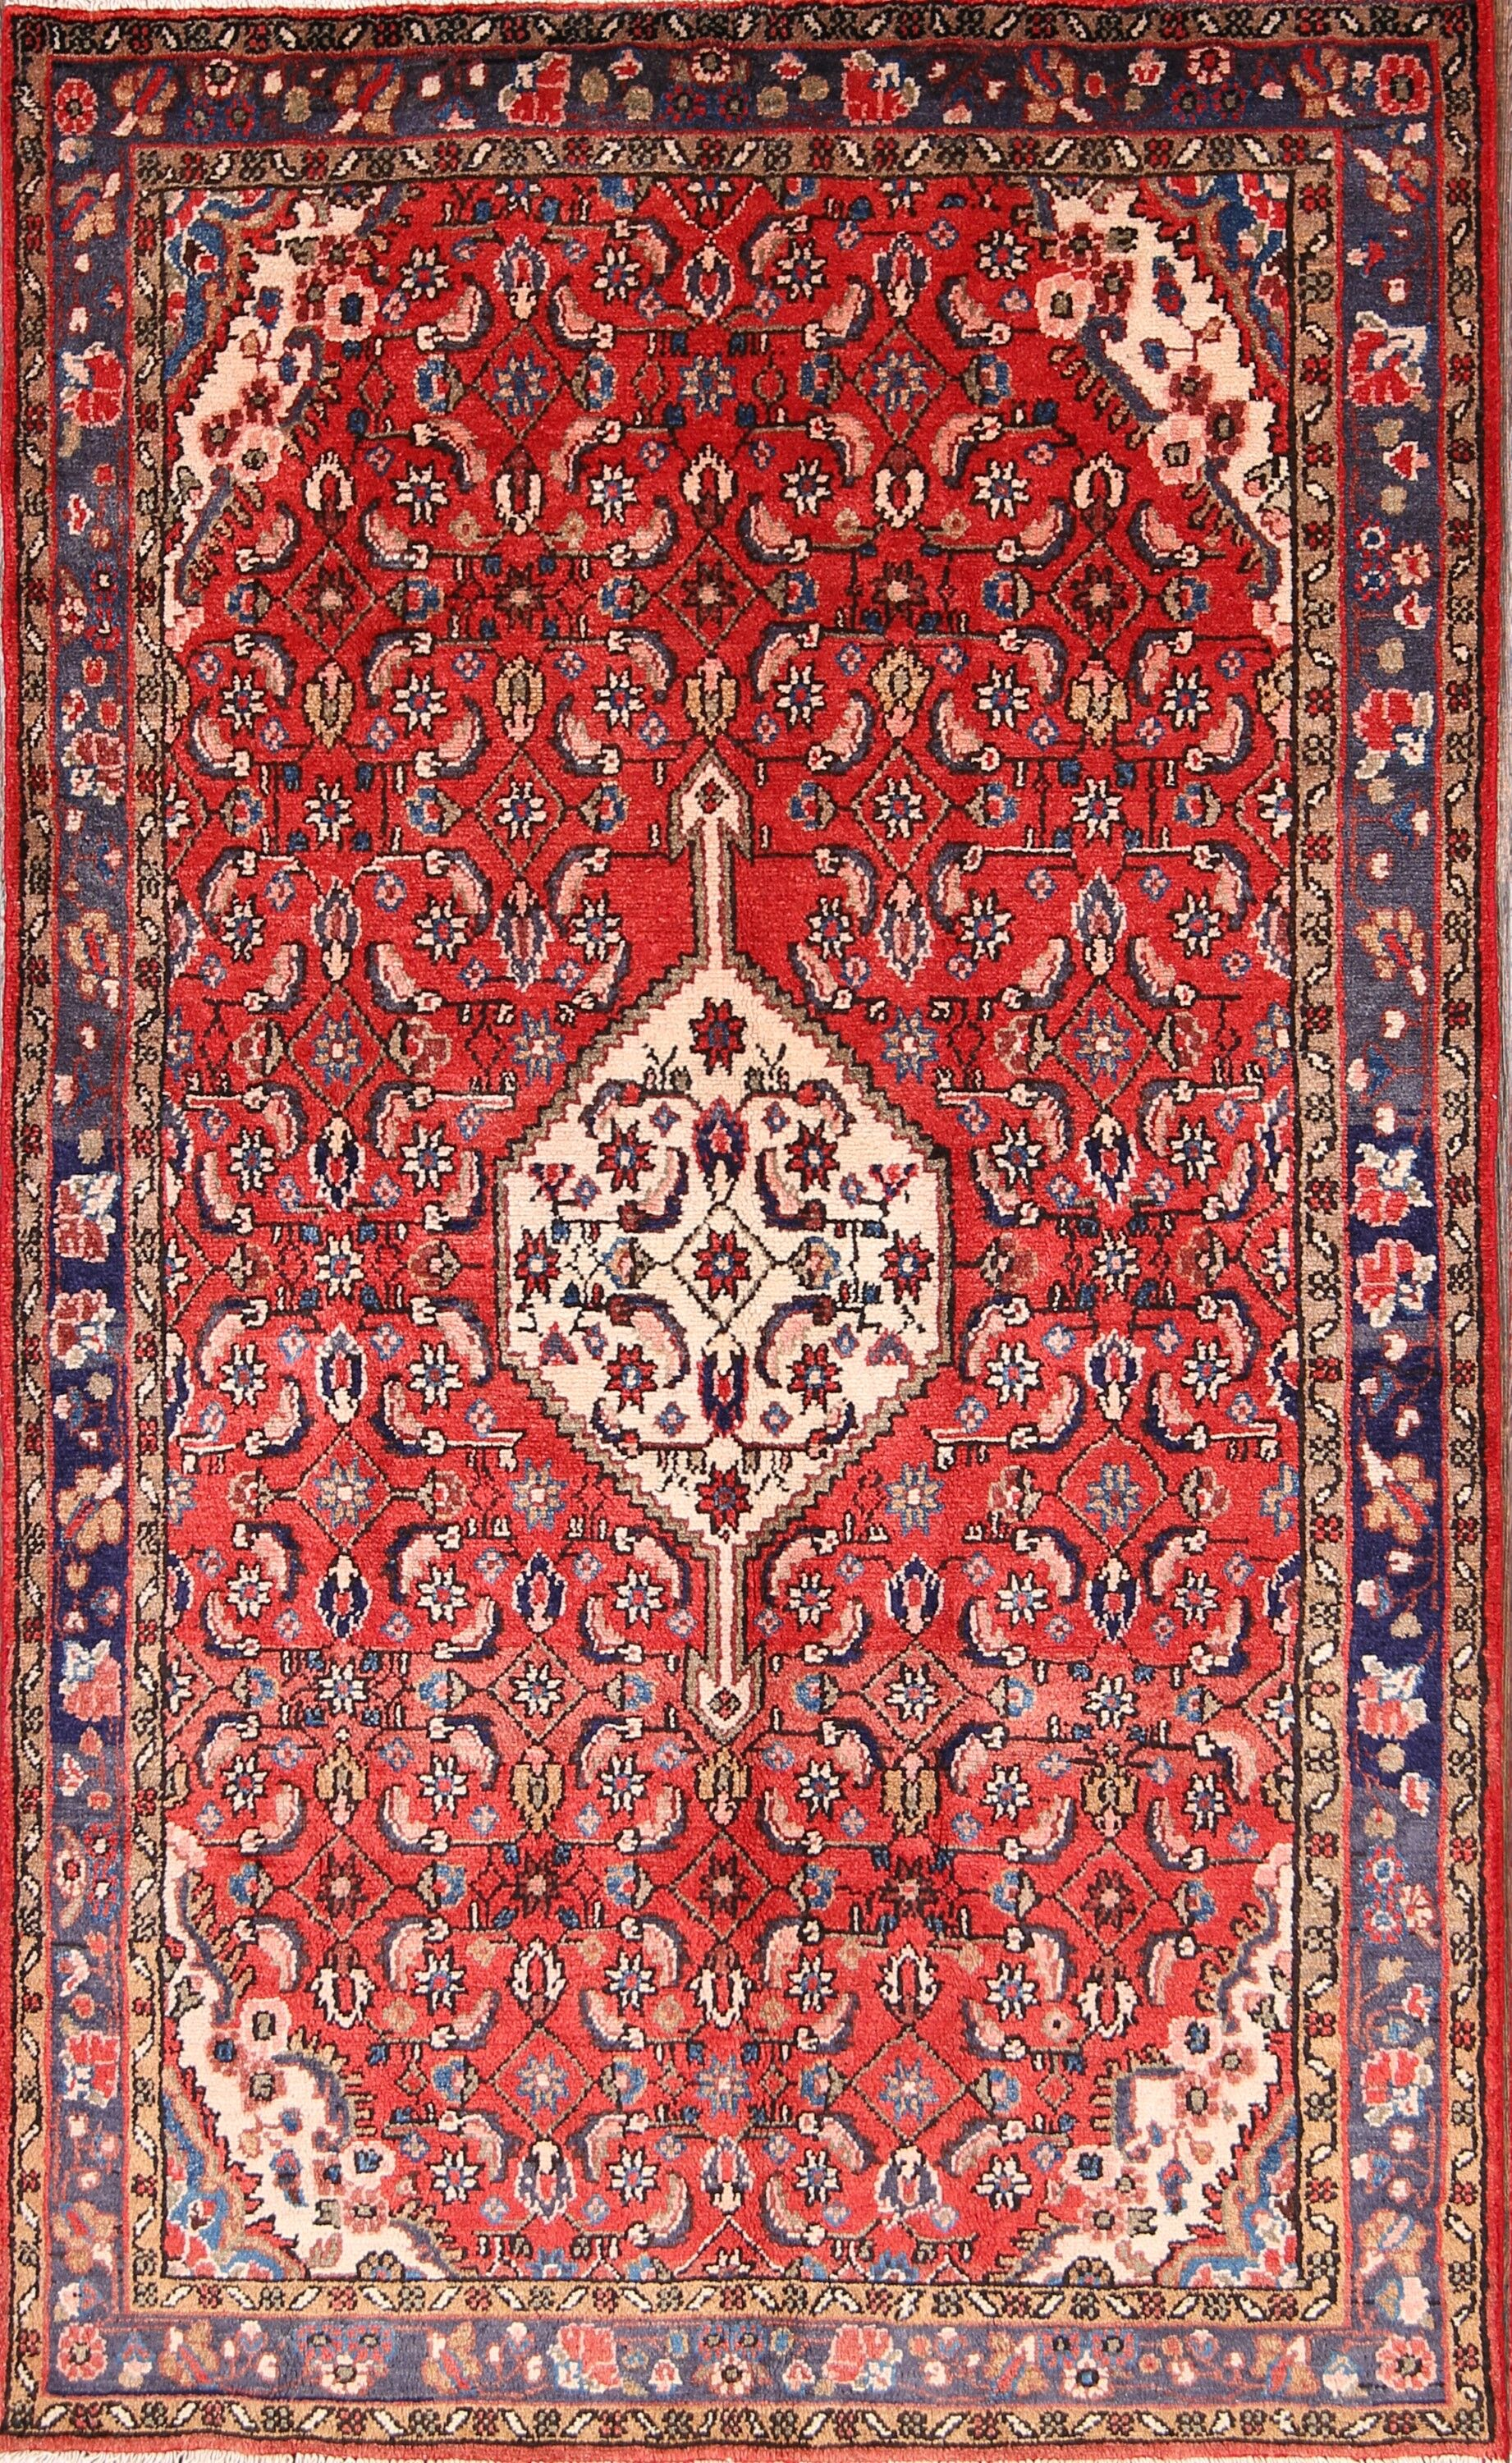 One-of-a-Kind Malayer Hamadan Persian Hand-Knotted 4'3